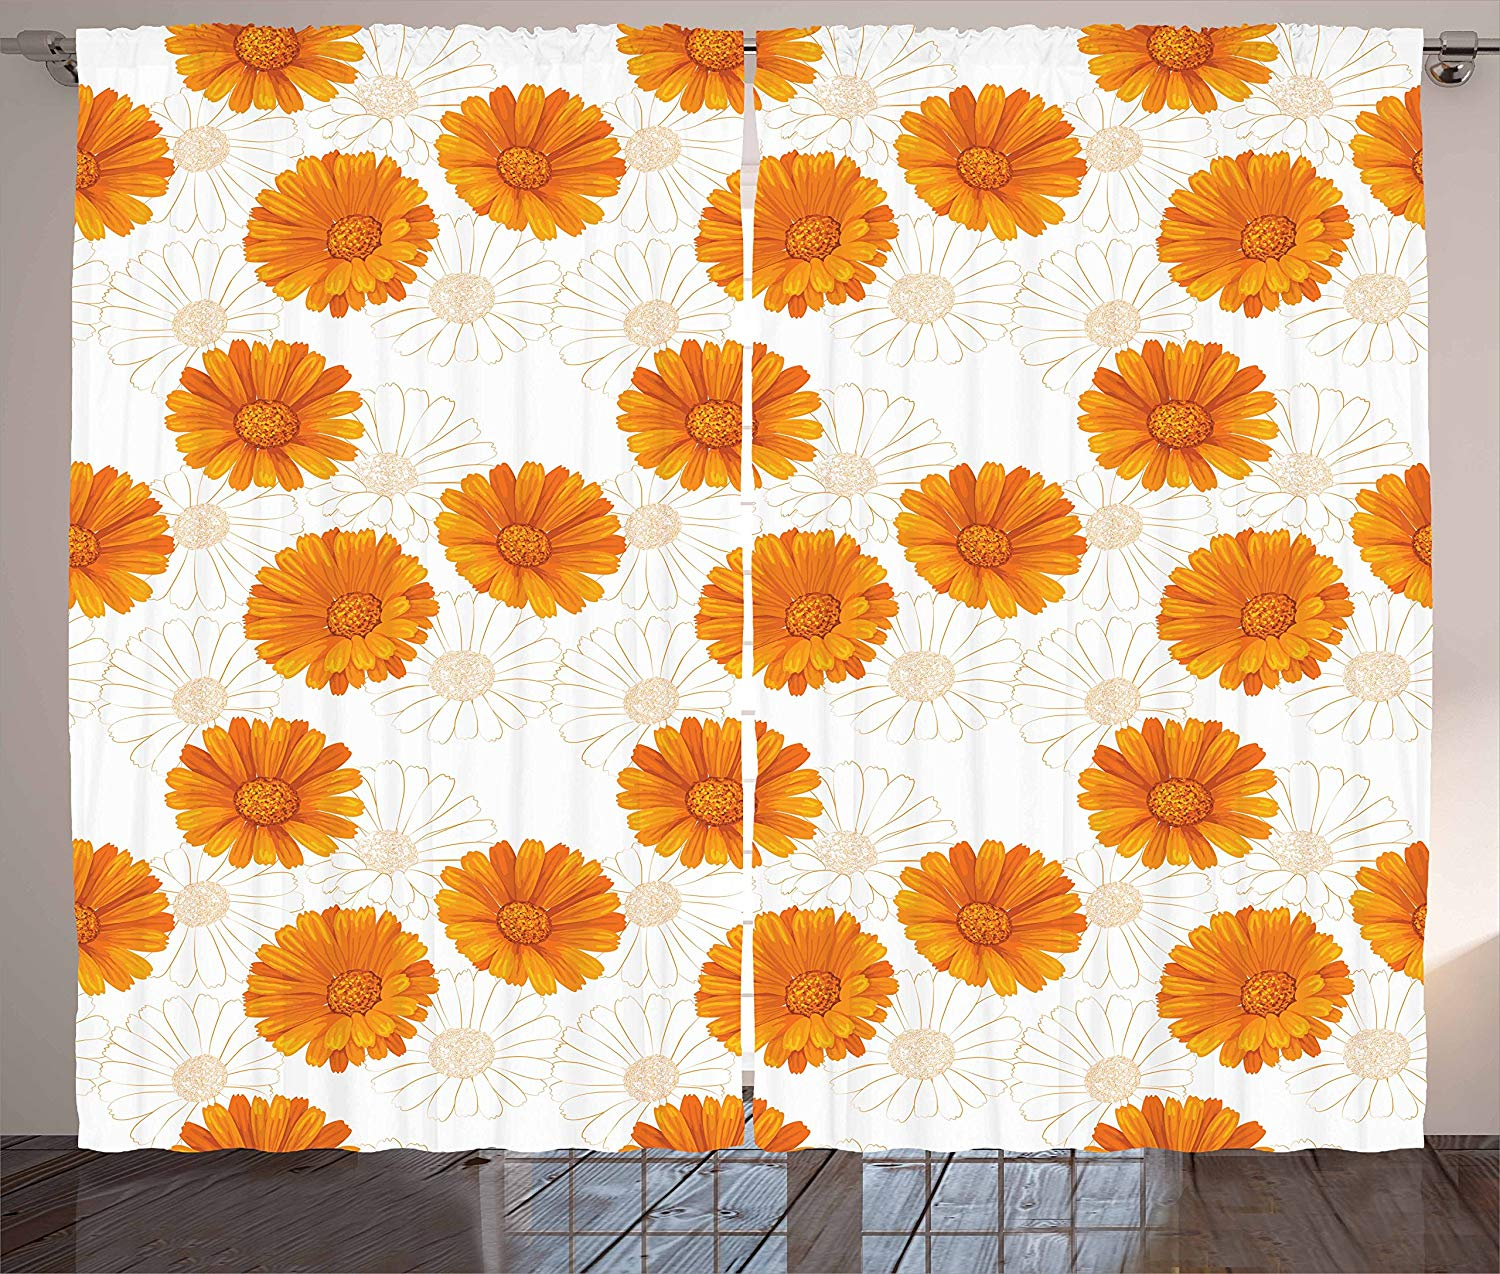 Burnt Orange Curtains Blooming Calendula Flowers Watercolor Botany Themed Composition Living Room Bedroom Window Decor